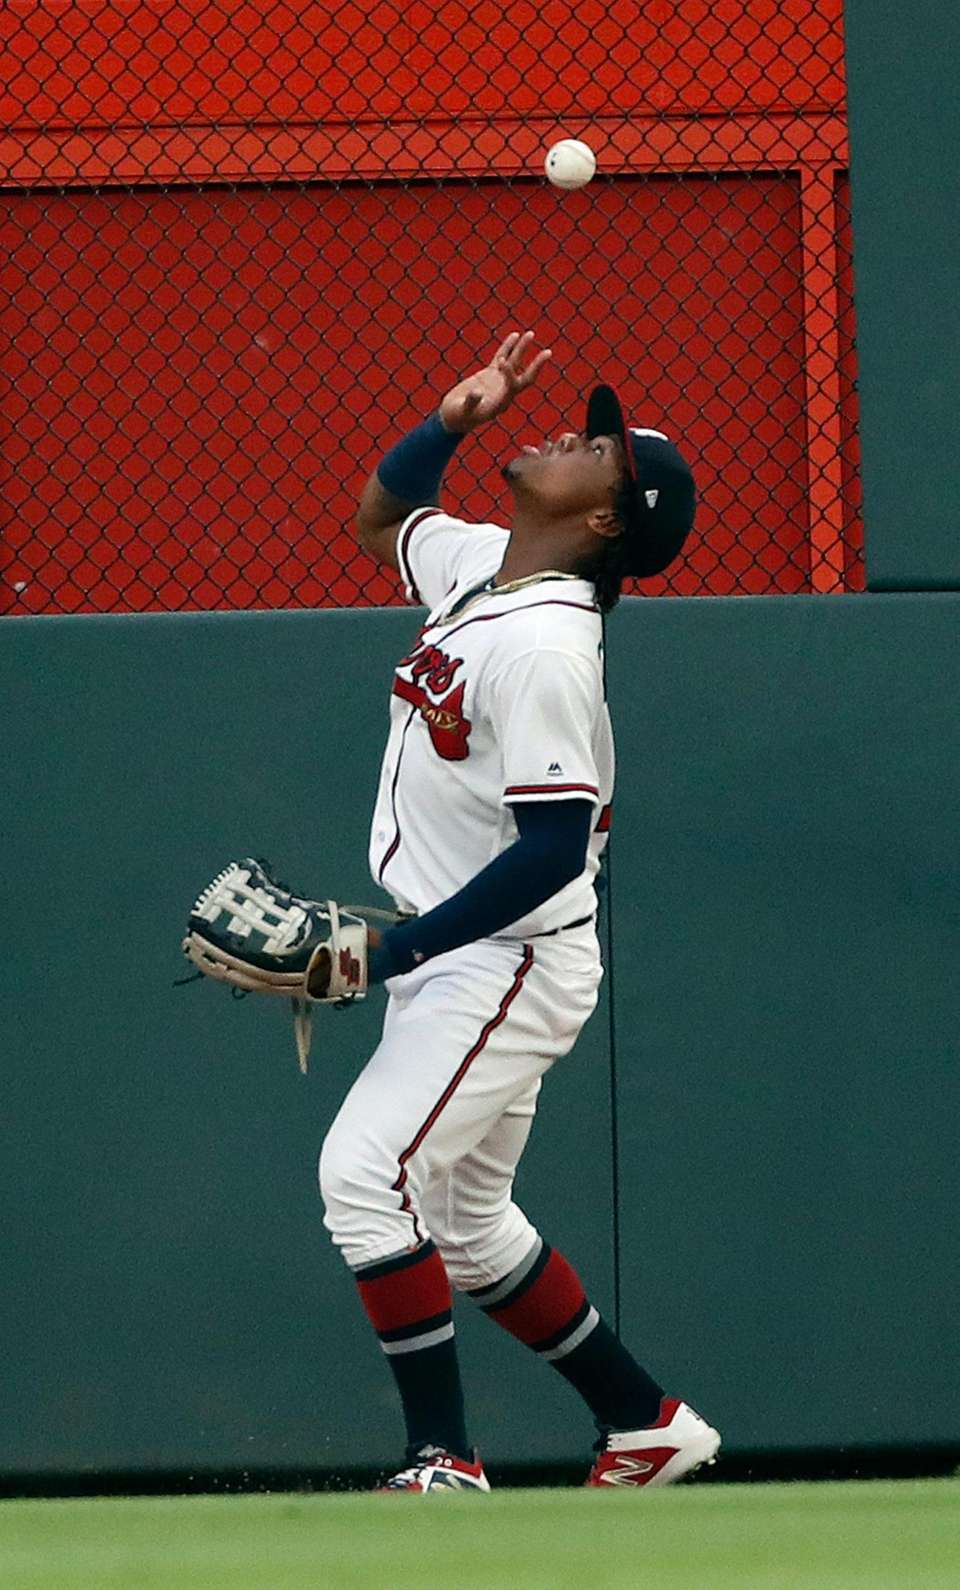 Atlanta Braves centerfielder Ronald Acuna Jr. bare hands